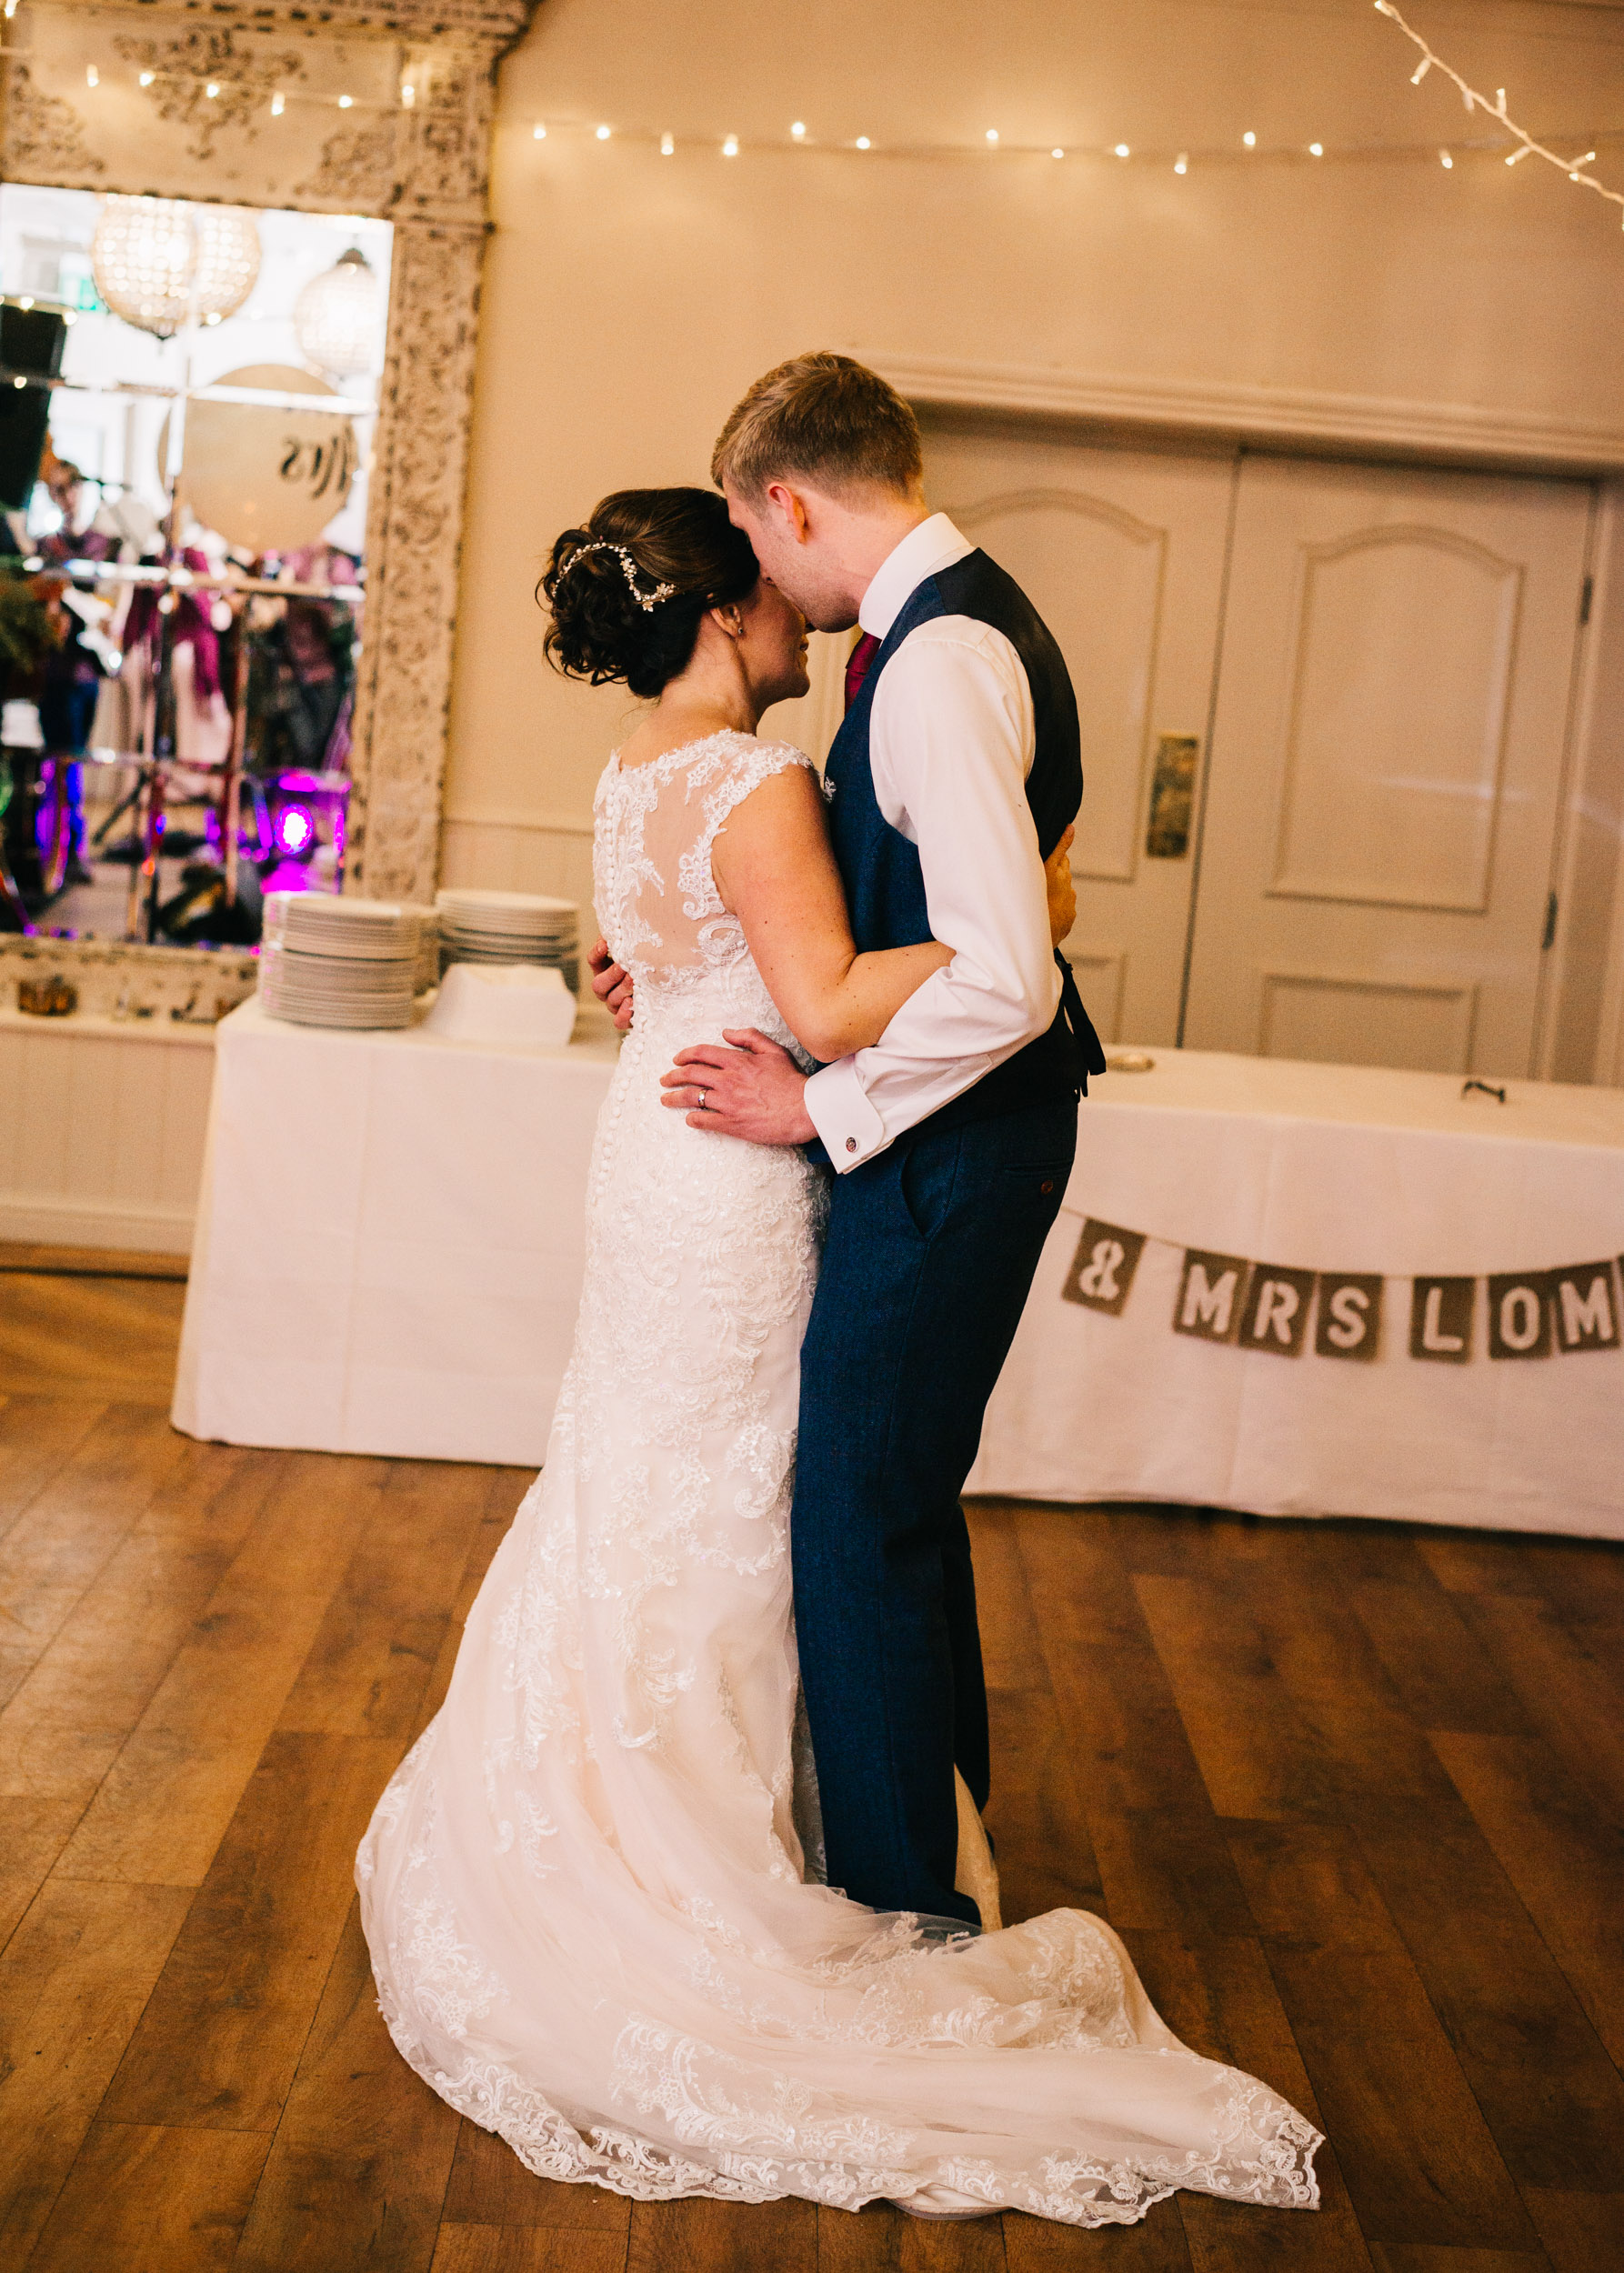 Shireburn Arms Wedding Hurst Green, Ribble Valley, Lancashire46